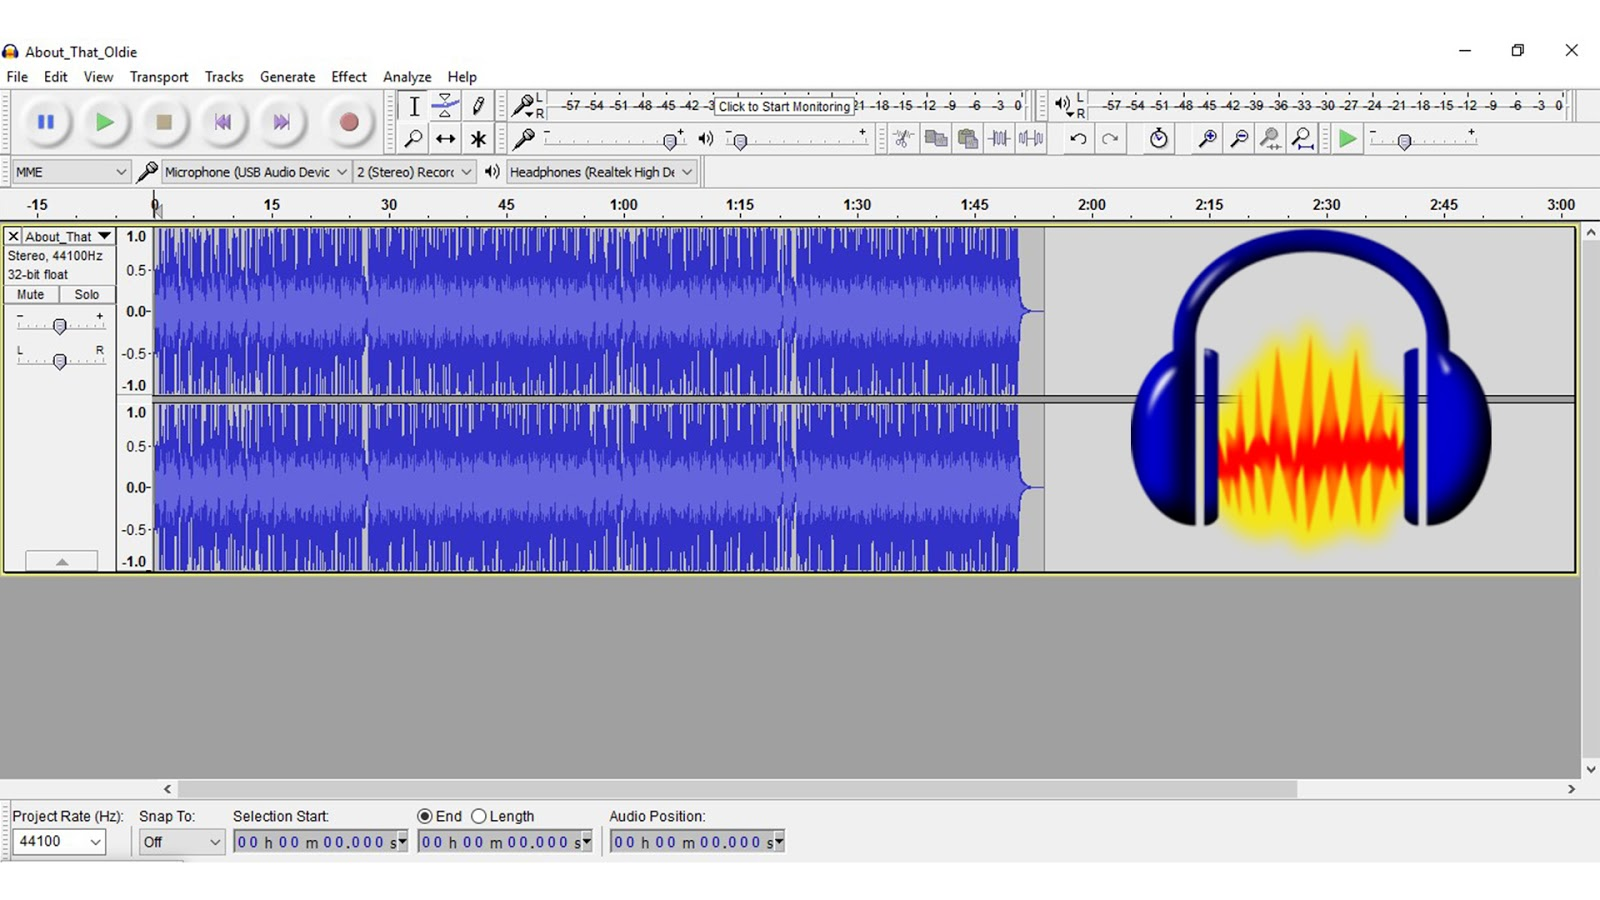 Download Audacity For Mac Os X 10 12 6 - paknohsa's blog